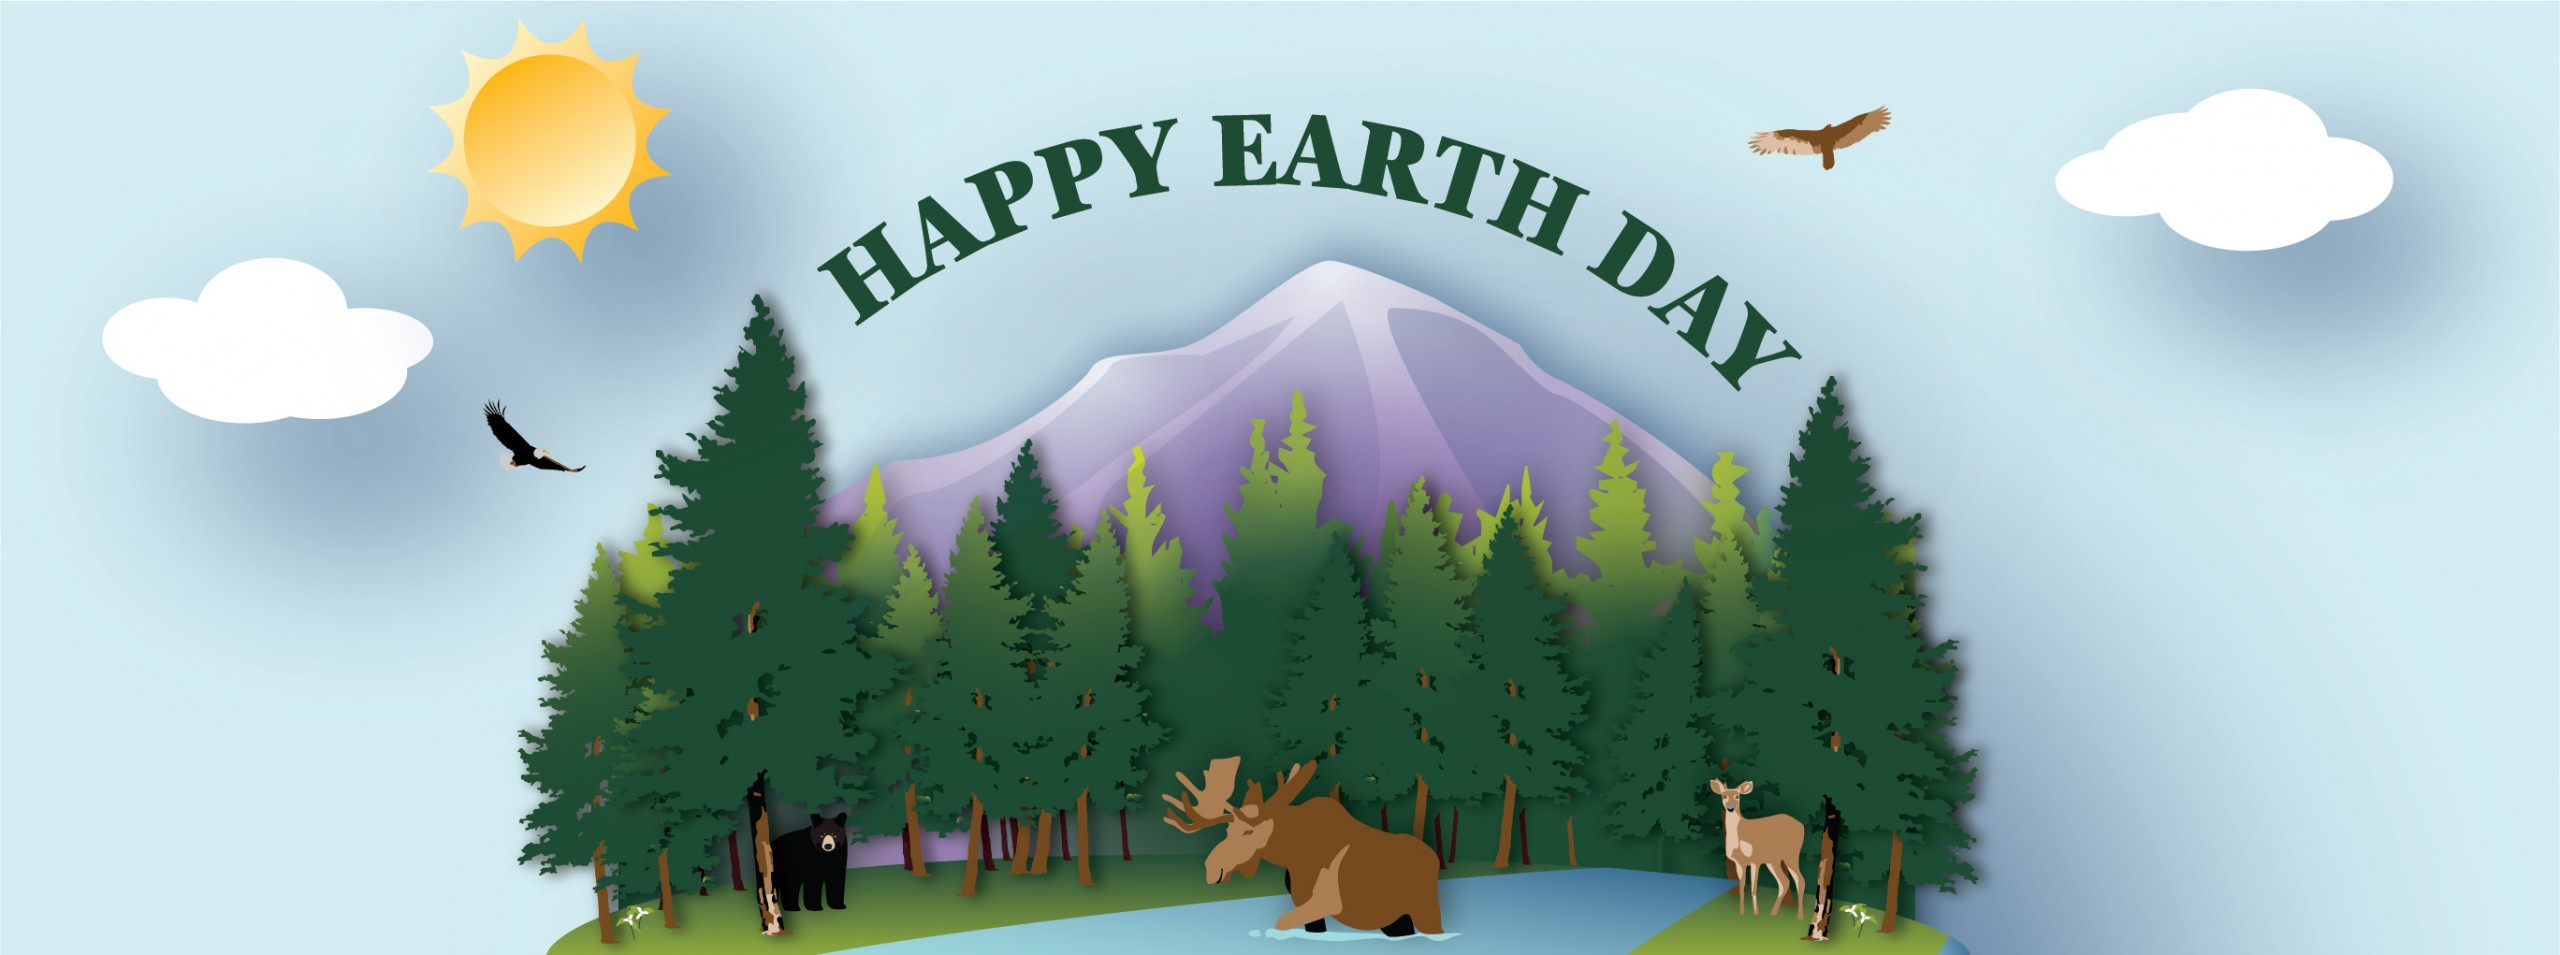 Earth Day 2021 image banner